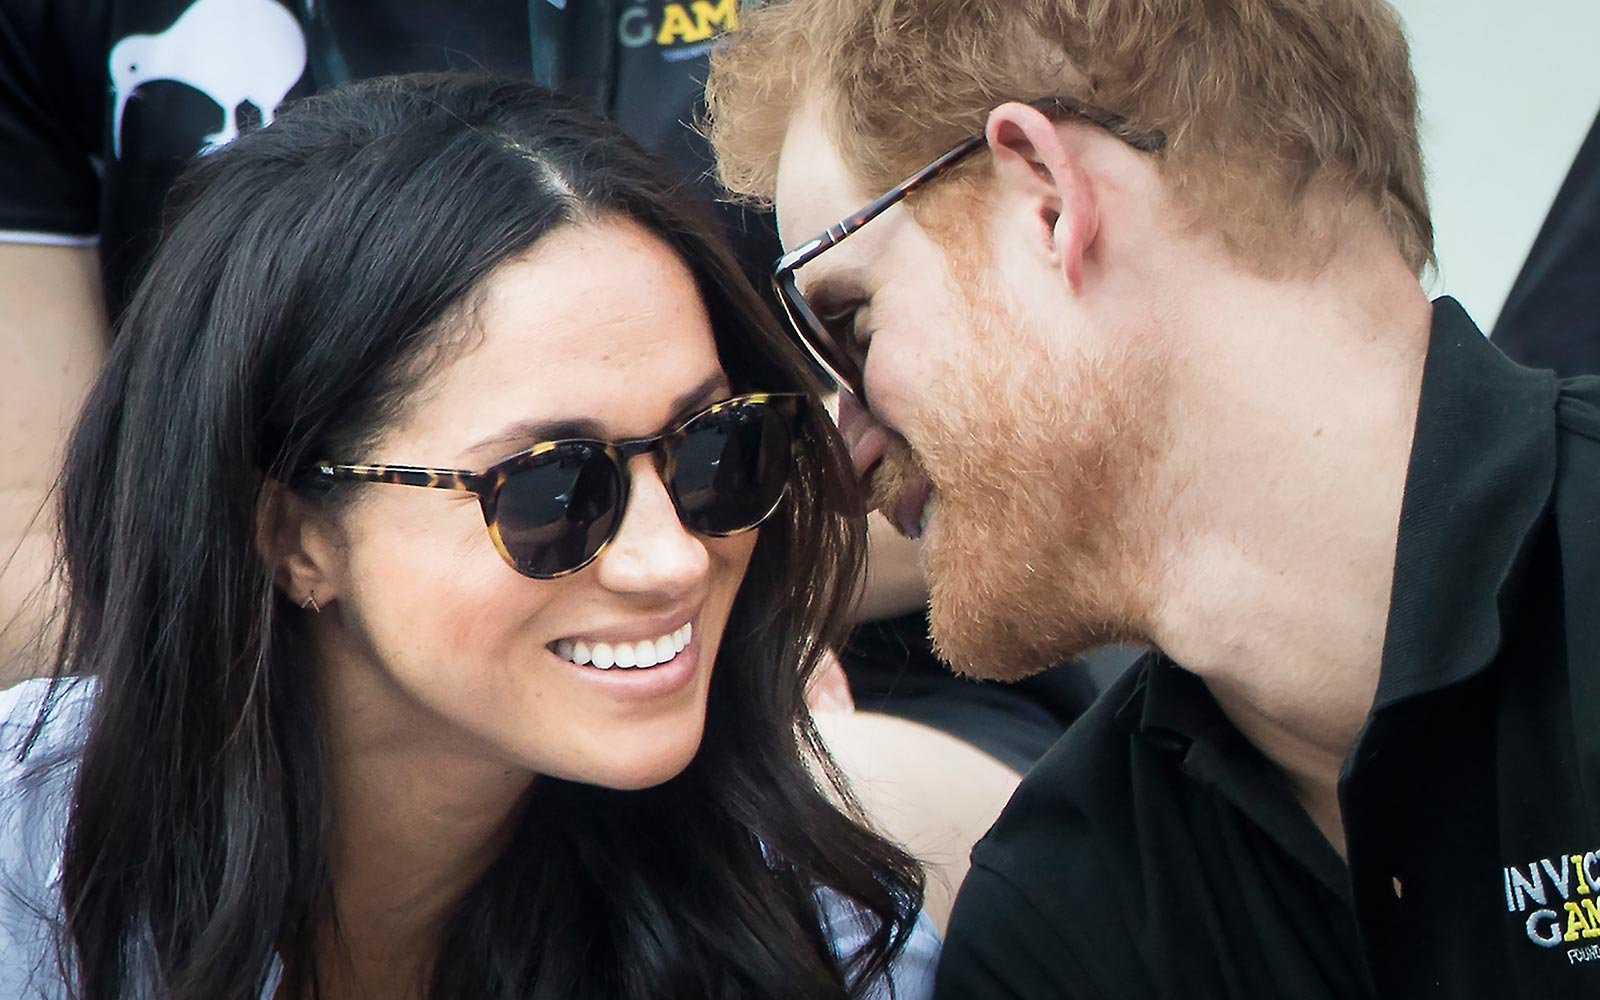 Prince Harry And Meghan Markle May Have A Royal Baby